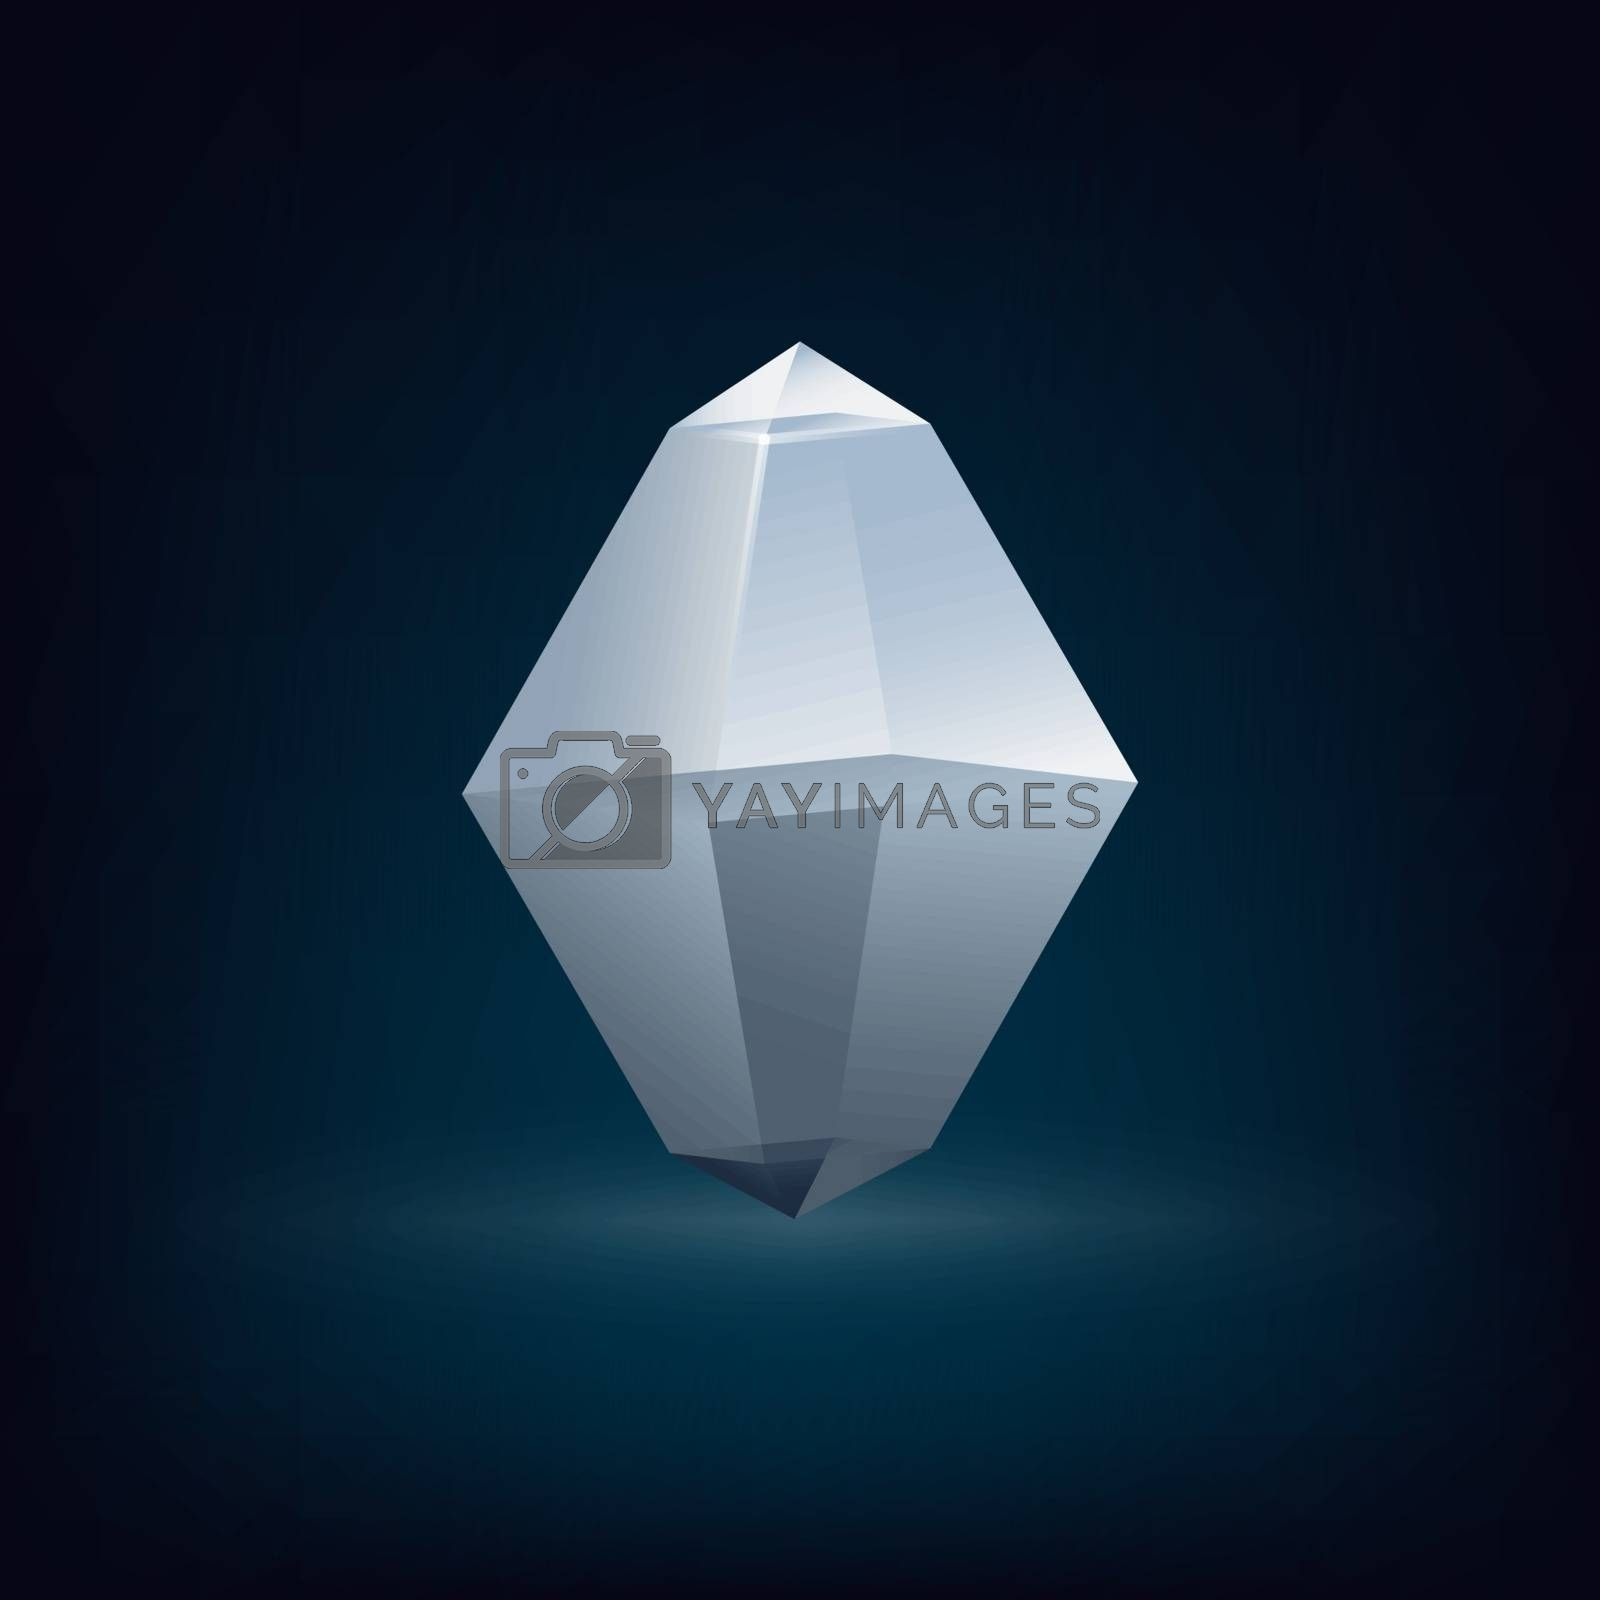 Abstract glass crystal low poly design set. Vector illustration.